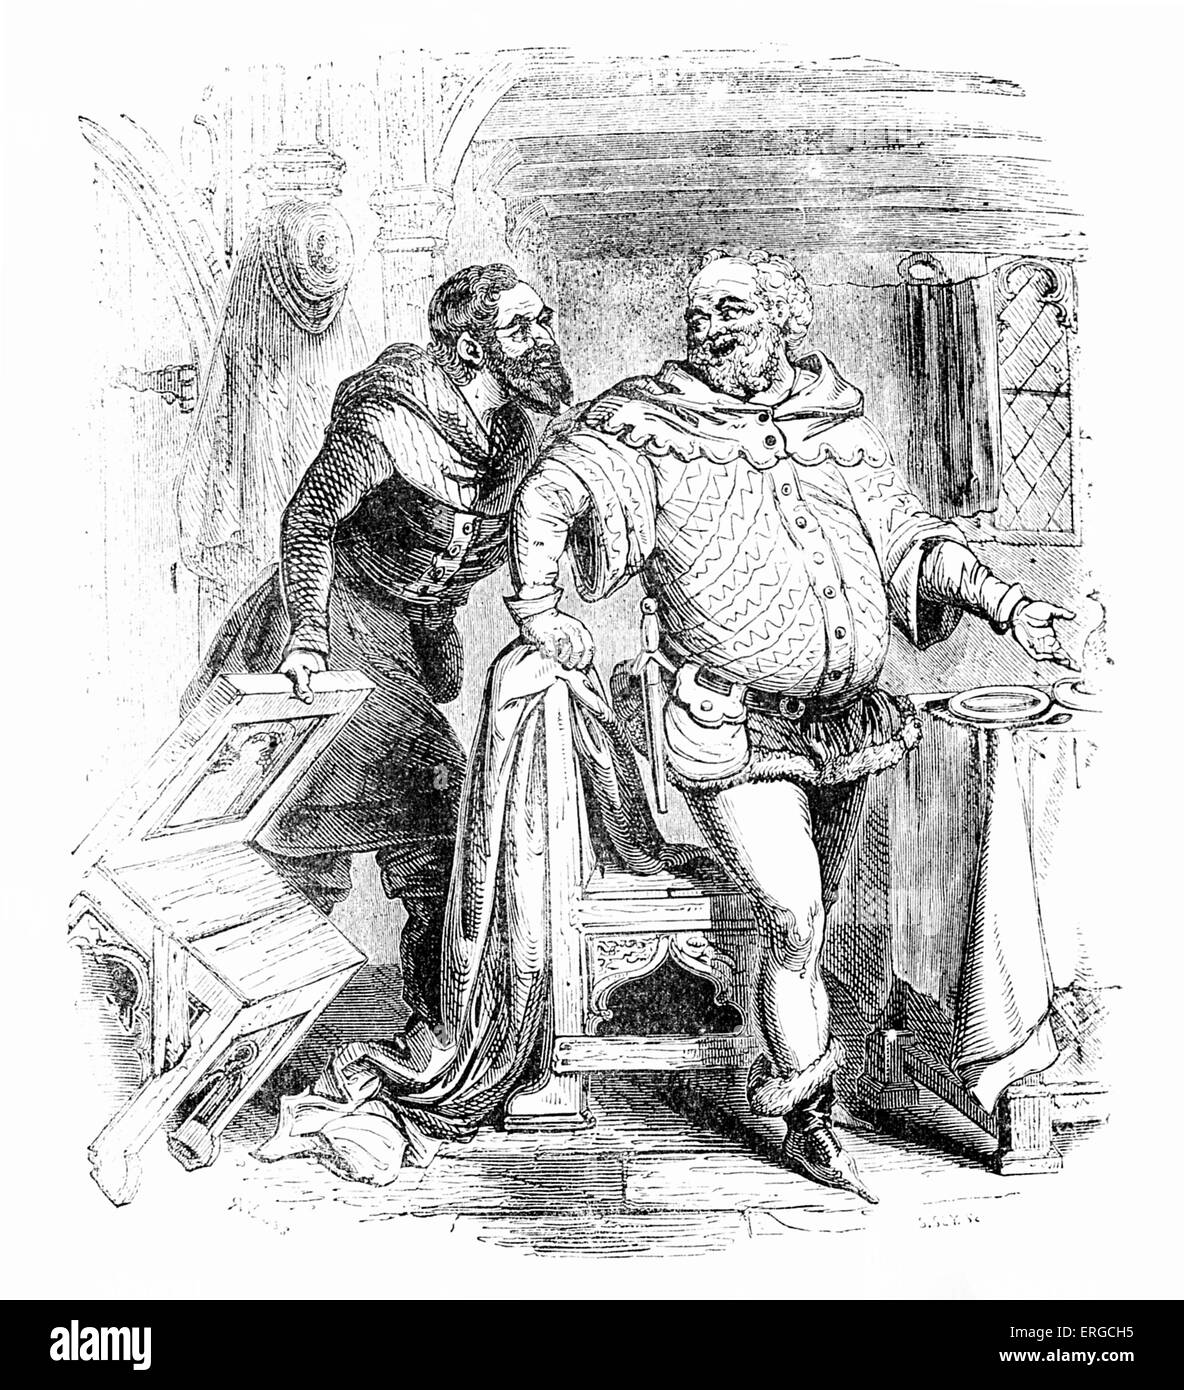 The Franklin and the Merchant (left). Engraving based on ' The Franklin's Tale ', from Geoffrey Chaucer's - Stock Image